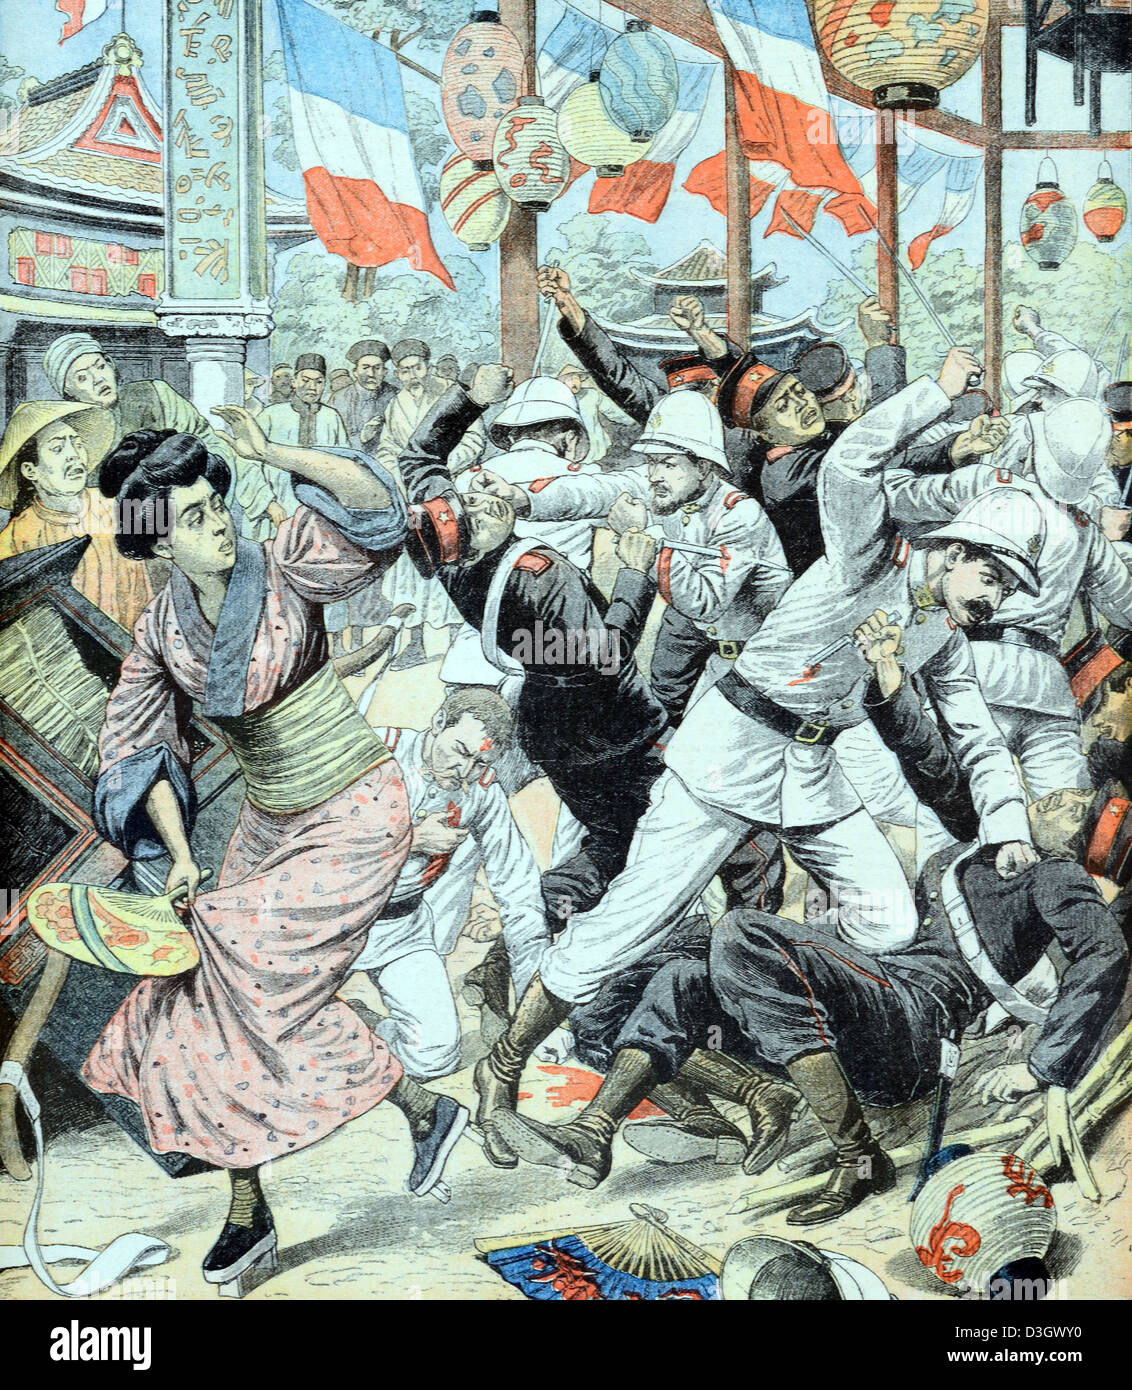 Confrontation between French & Japanese Troops or Soldiers in China (July 1904) - Stock Image